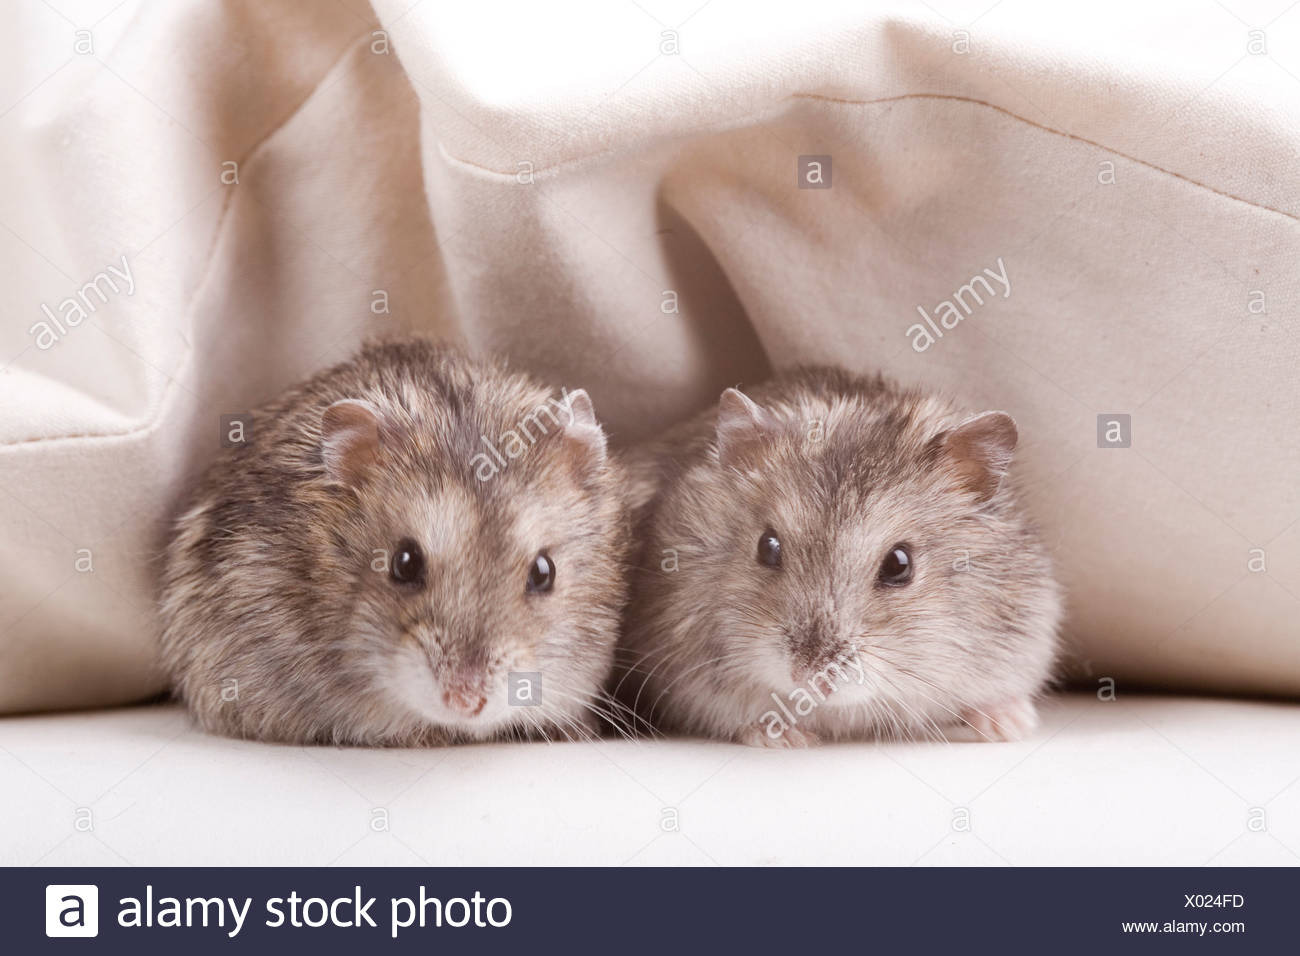 Two hamster in bed - Stock Image